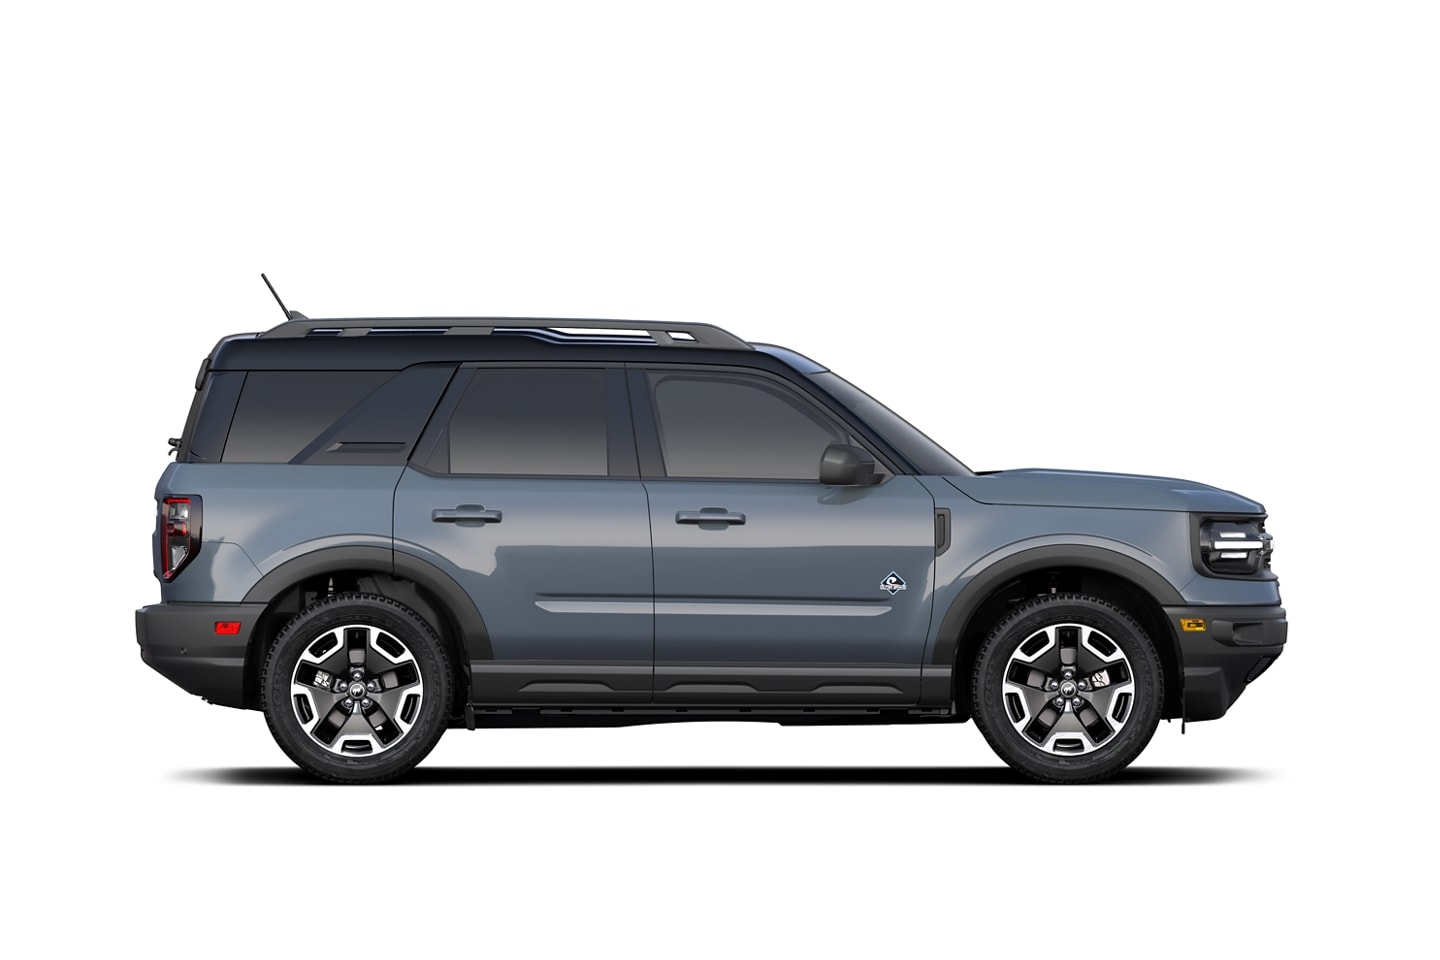 2022 Ford Bronco™ Sport Outer Banks™ model shown in profile